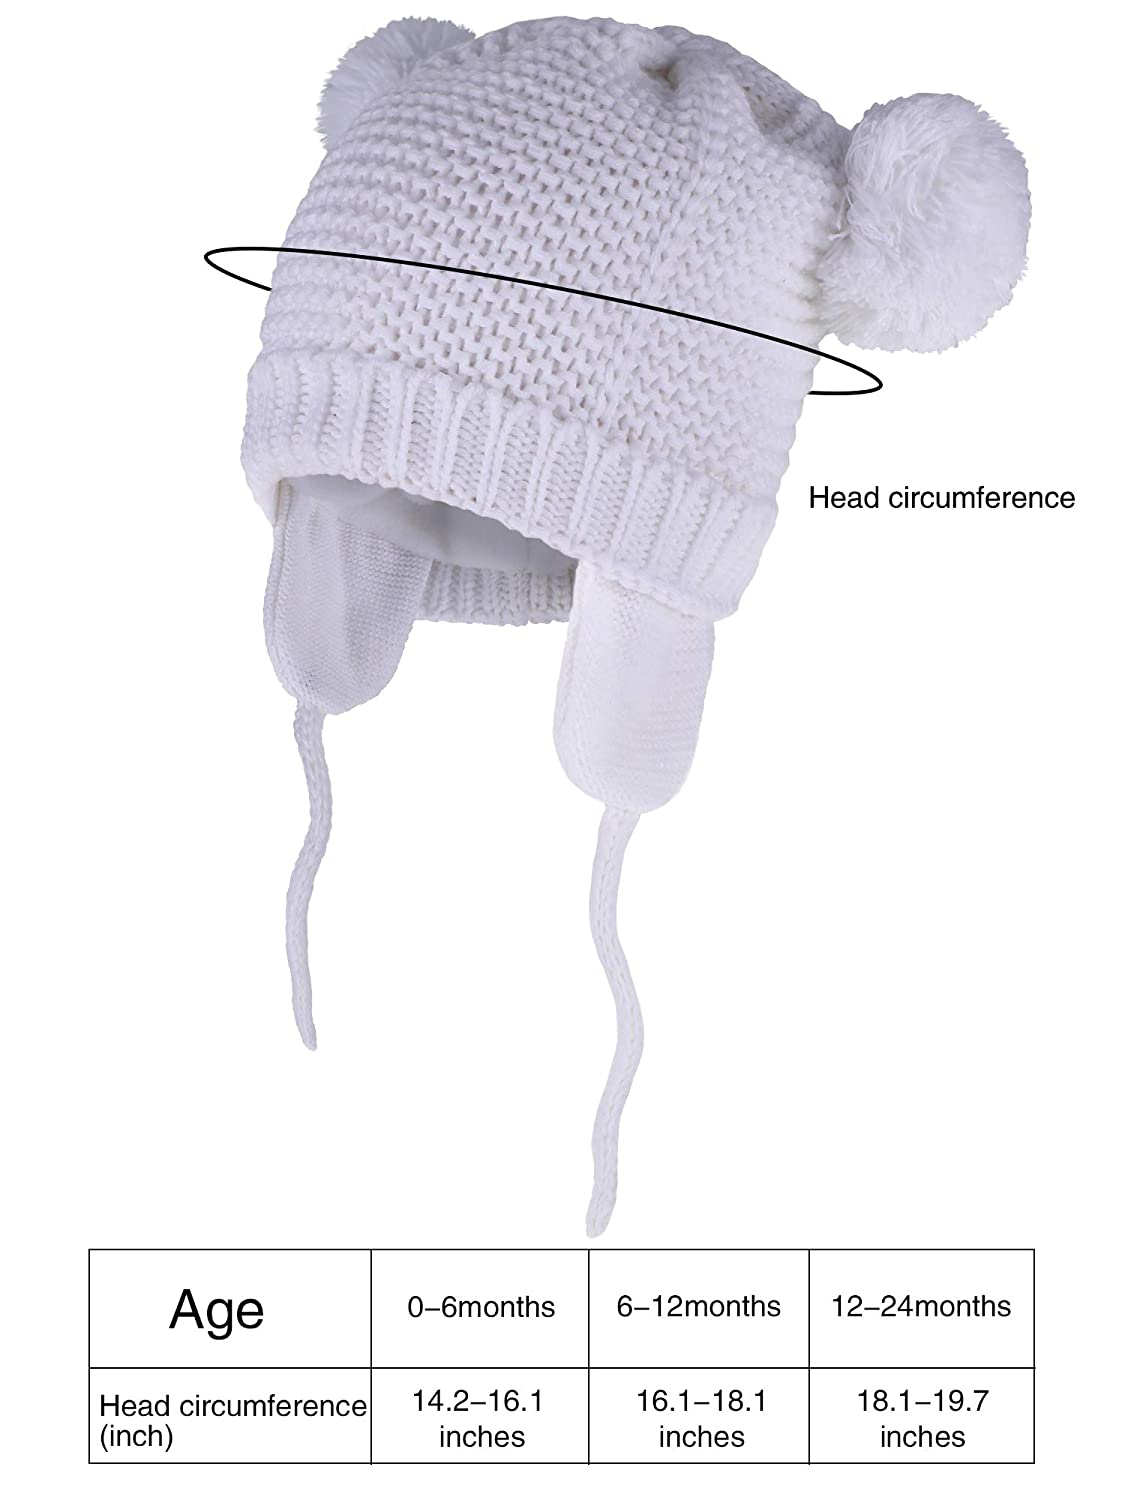 2 Pieces Baby Beanie Toddler Warm Knit Hats Fleece Lined Animals Shape Caps with Earflap for Boys and Girls Winter Supplies